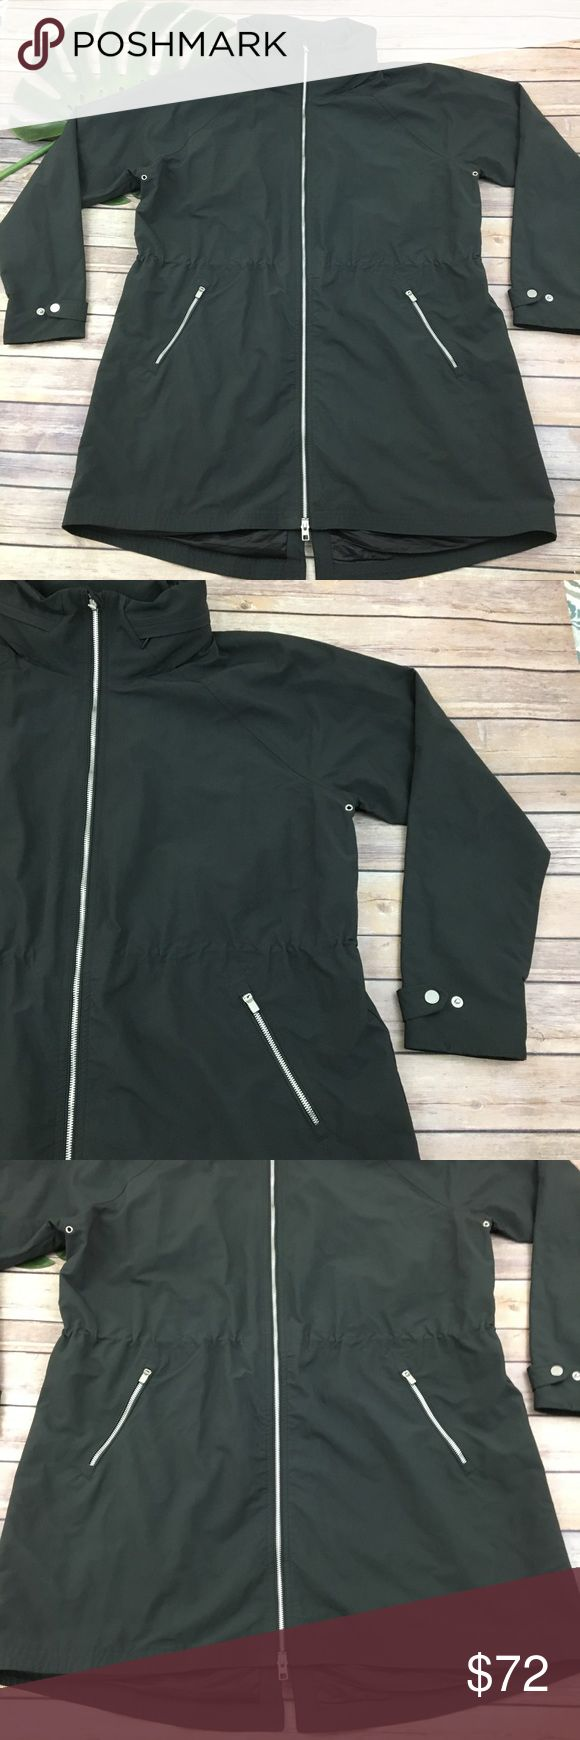 Athleta Misty flint gray rain resistant jacket Athleta Misty water resistant jacket, size XL. It is free from any rips or stains. It measures about 50 inches around the bust and is about 35 inches long. Athleta Jackets & Coats